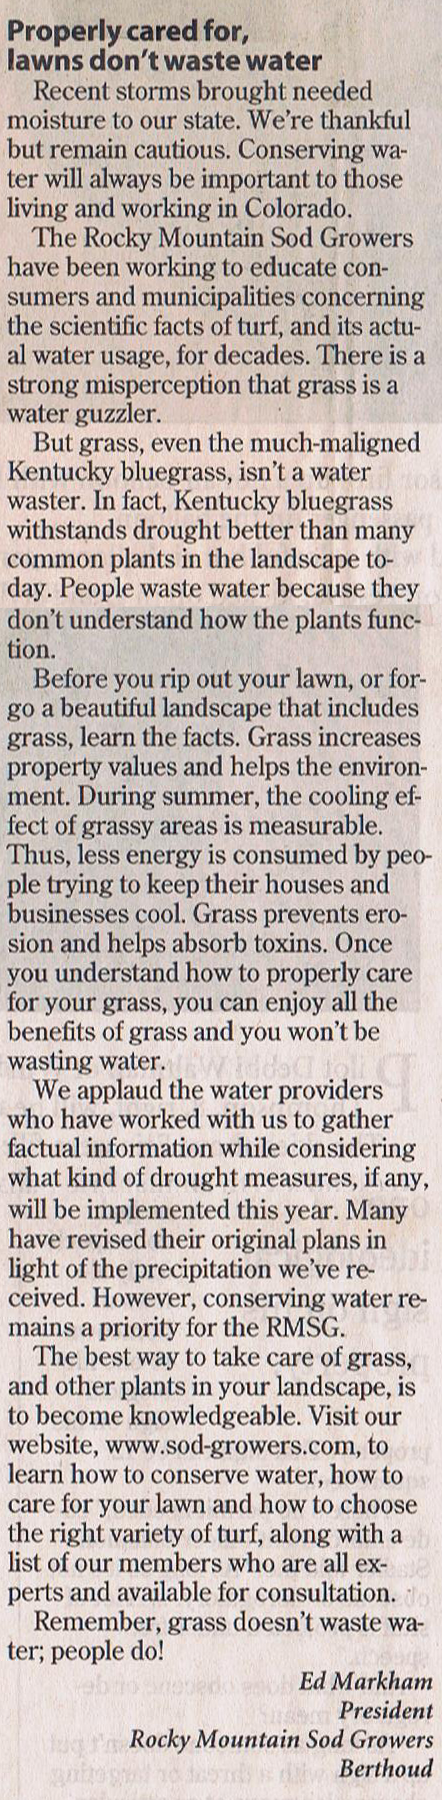 RMSG-May-2013-Letter-to-Editor-001-1